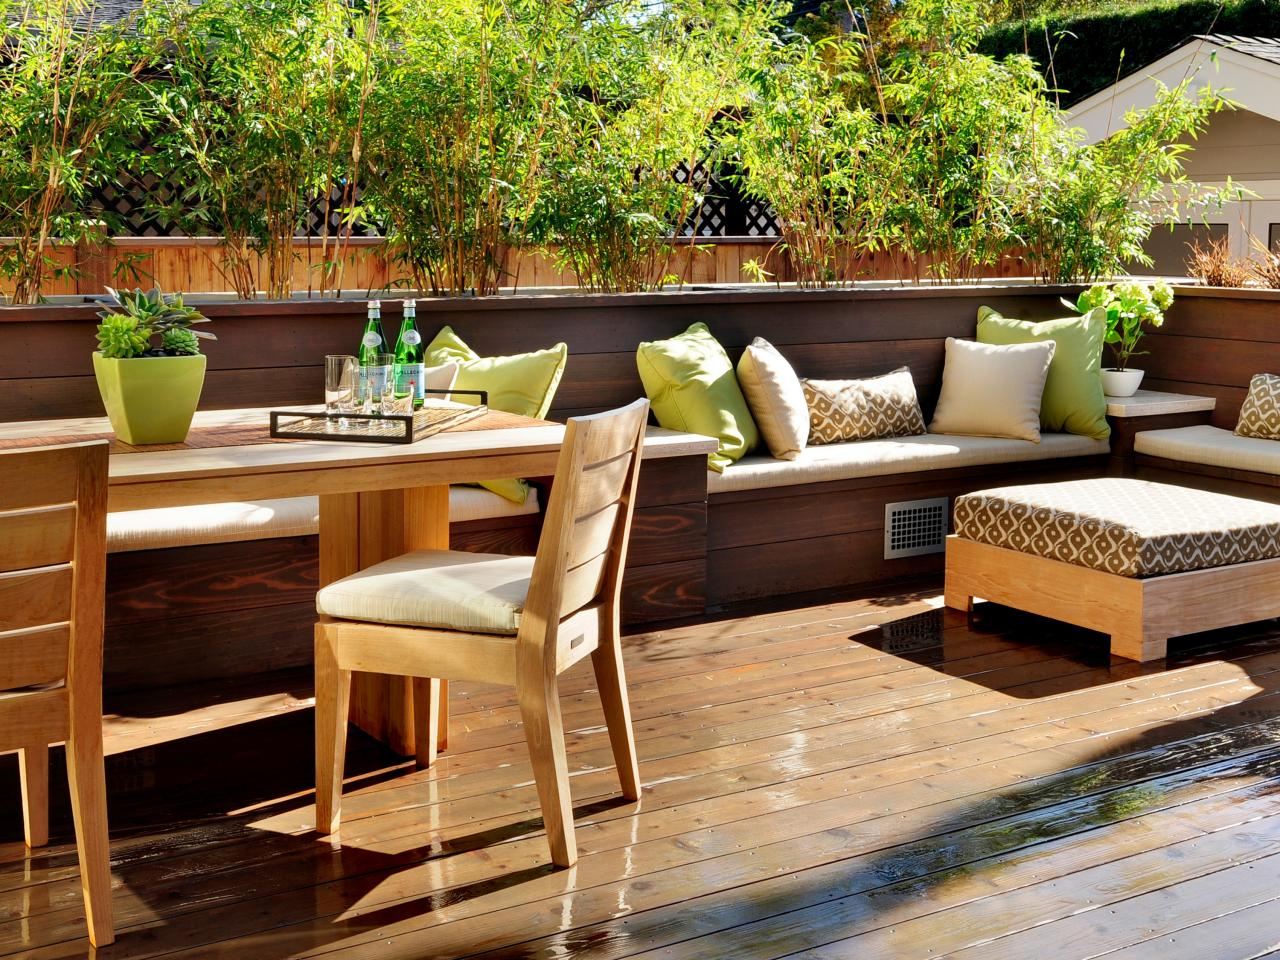 Deck design ideas outdoor spaces patio ideas decks for Patio deck decorating ideas